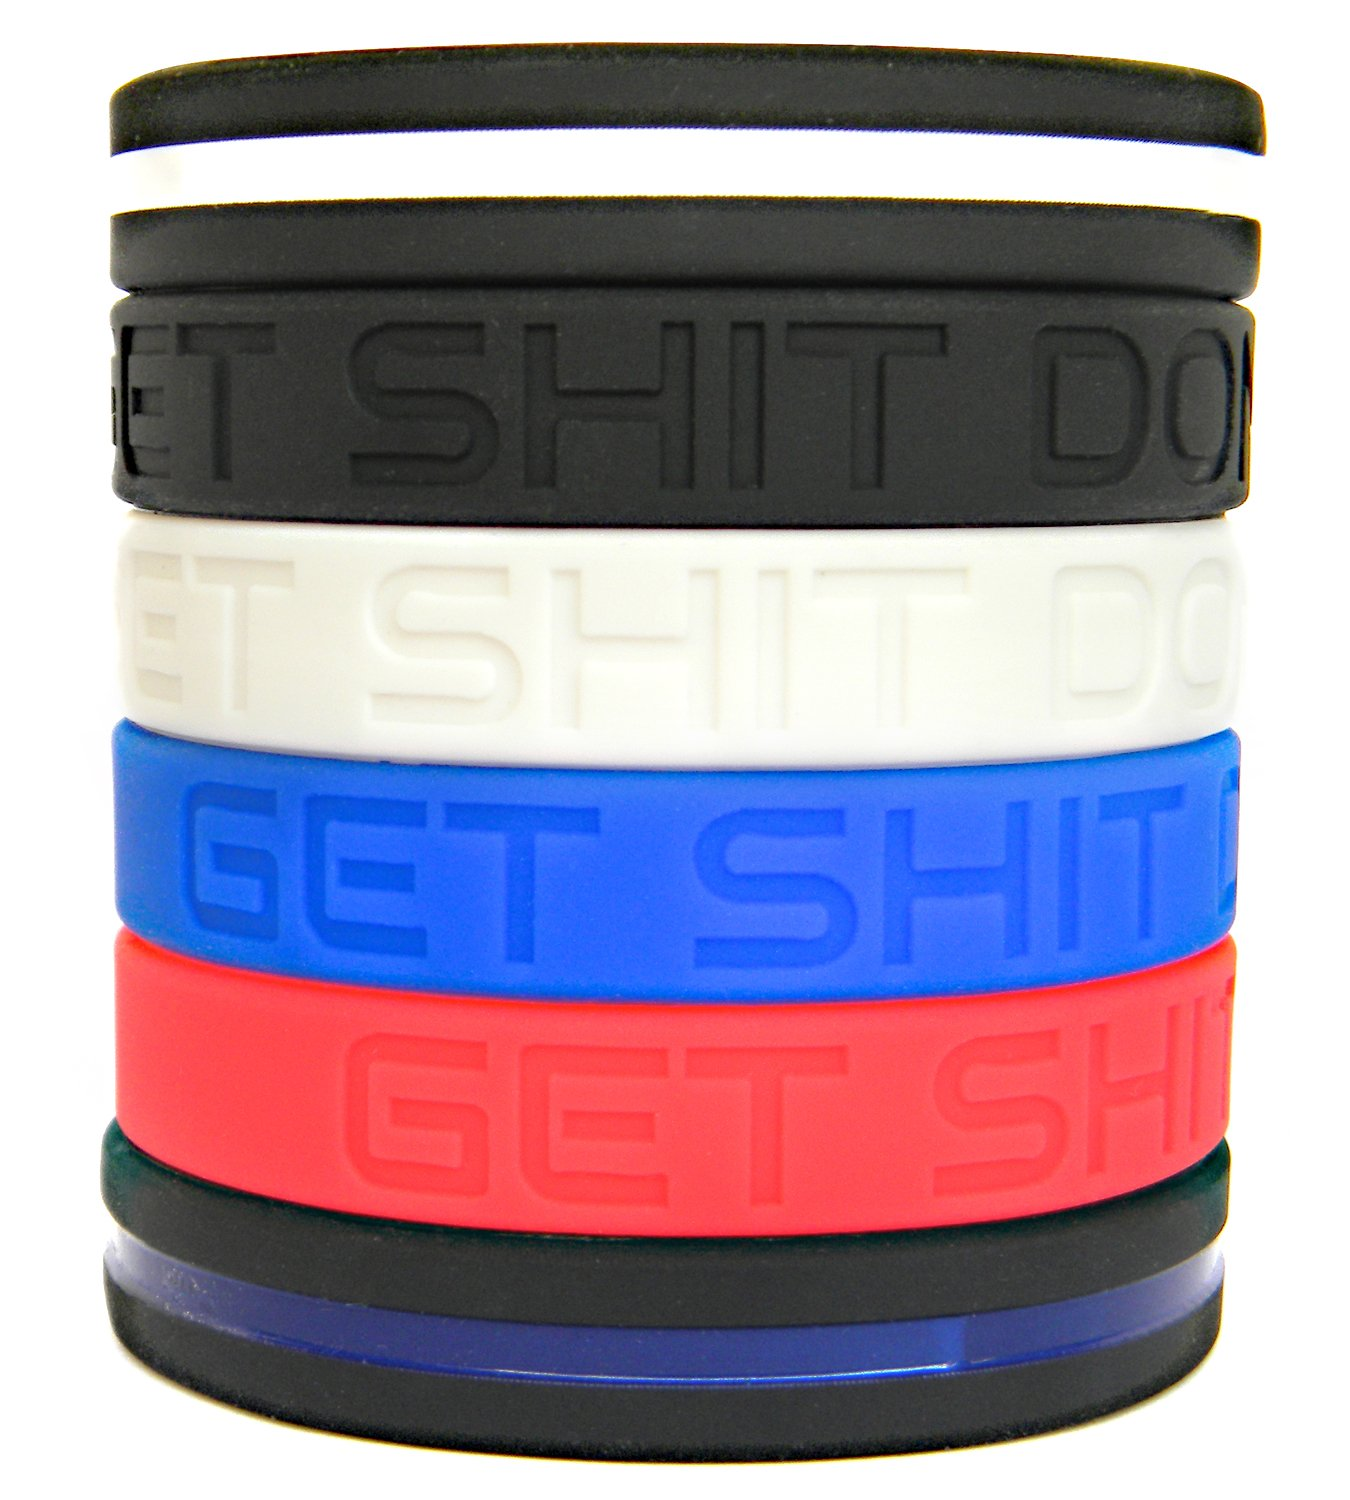 "Motivational Silicone Bracelets Set by Solza |4x ""Get Shit Done"" Silicone Wristbands + Thin Blue Line Bracelet + Thin White Line Bracelet 